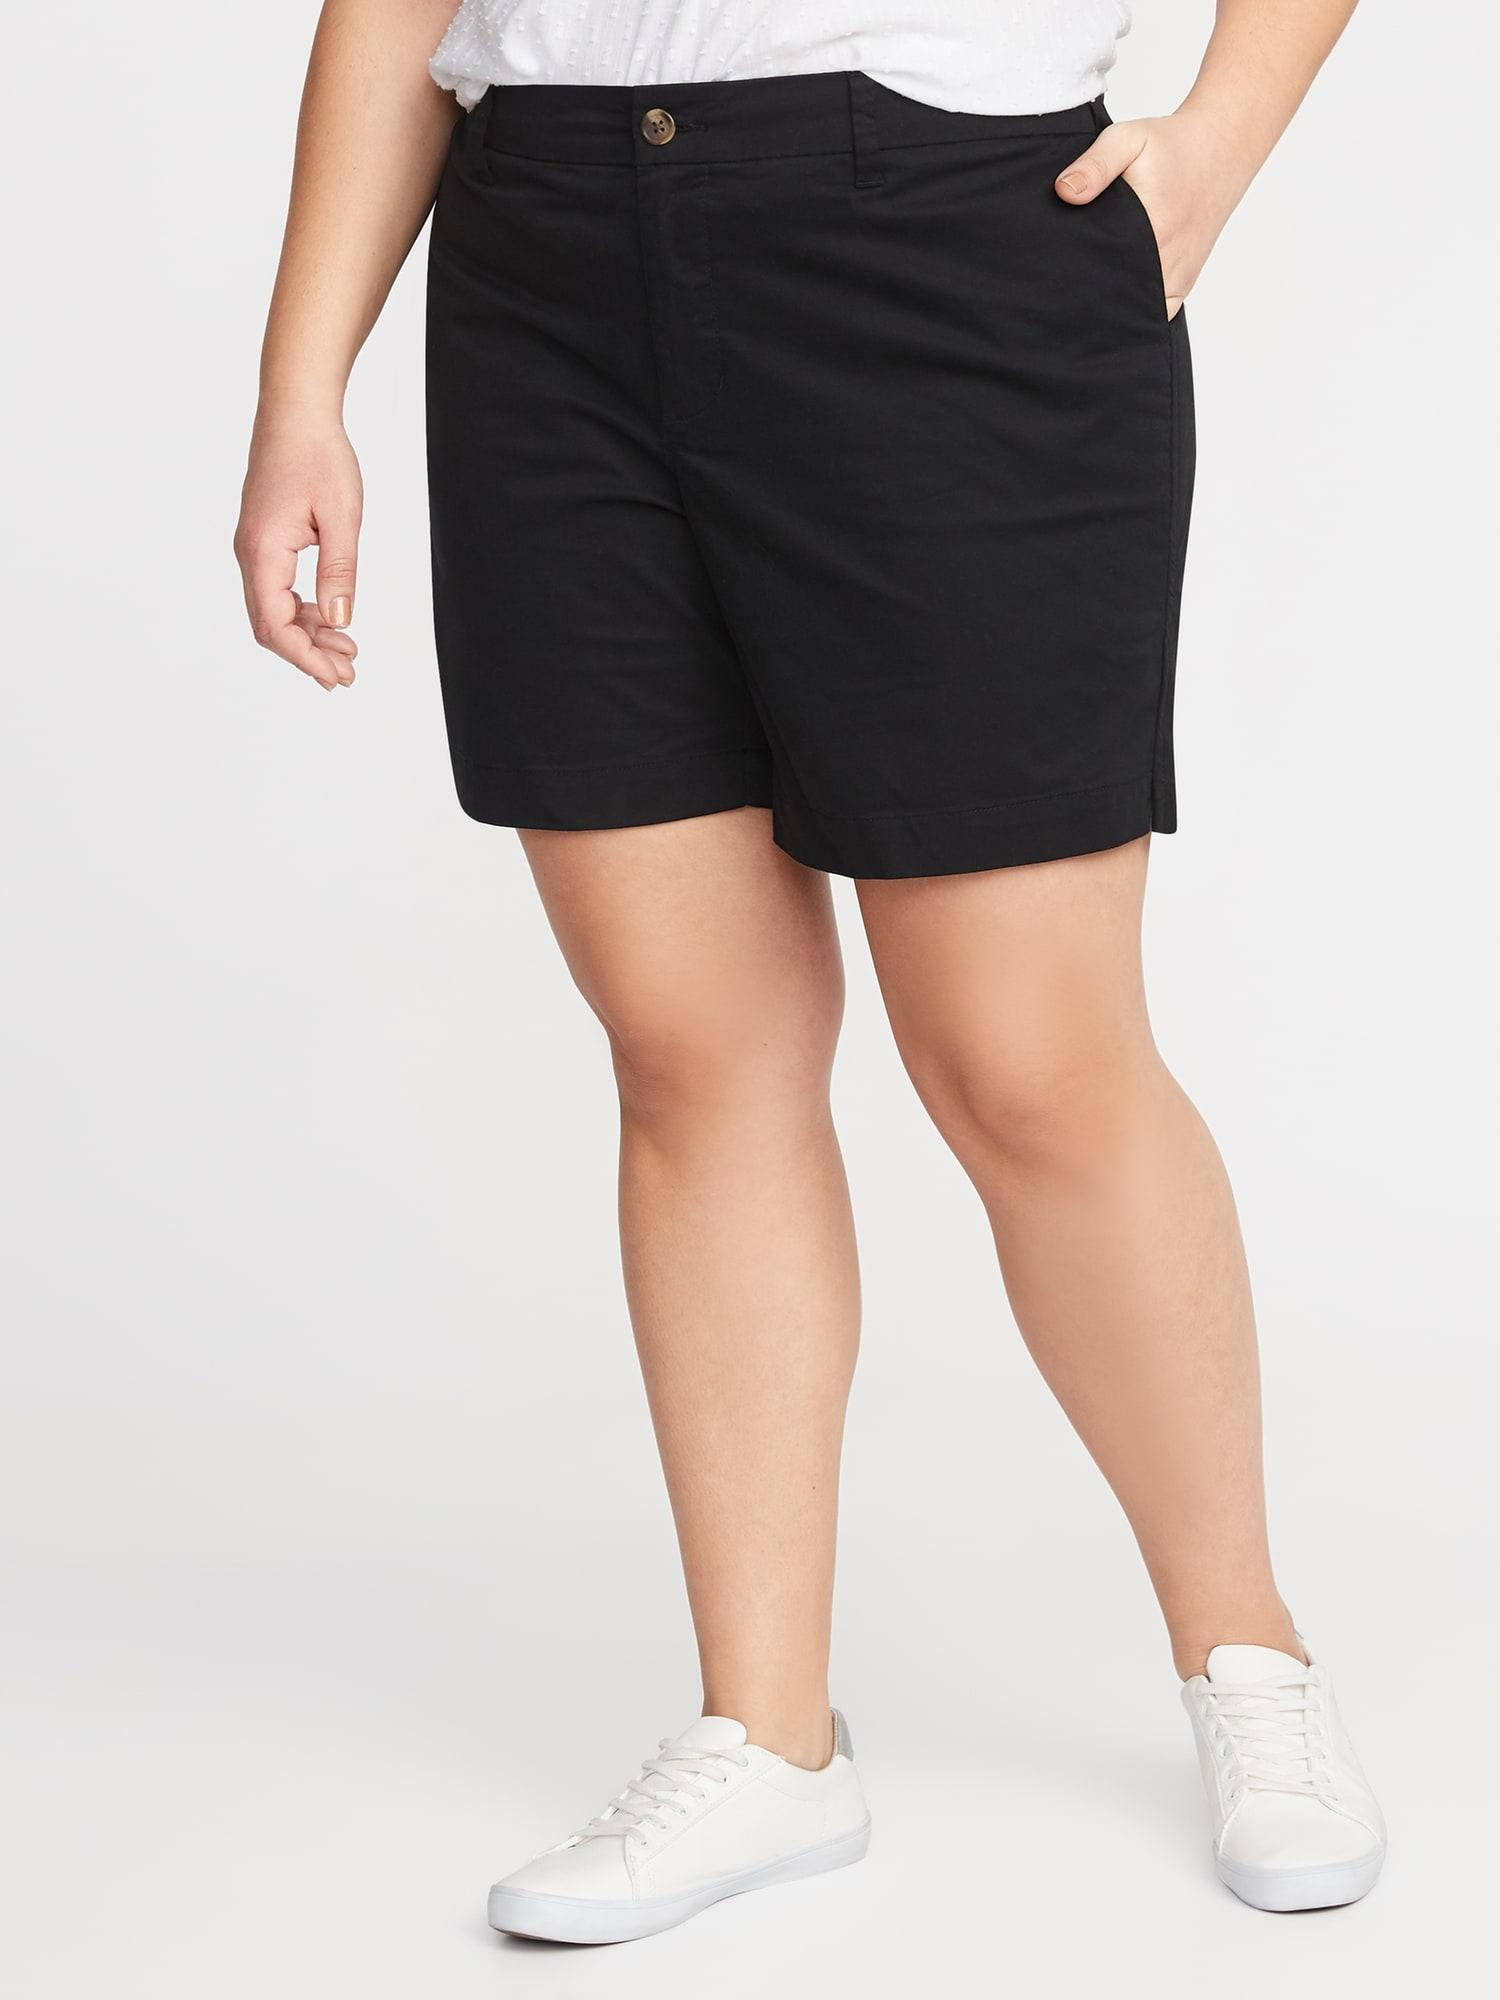 a099a5dda0 Old Navy. Women's Black Mid-rise Plus-size Twill Everyday Shorts - 7-inch  Inseam